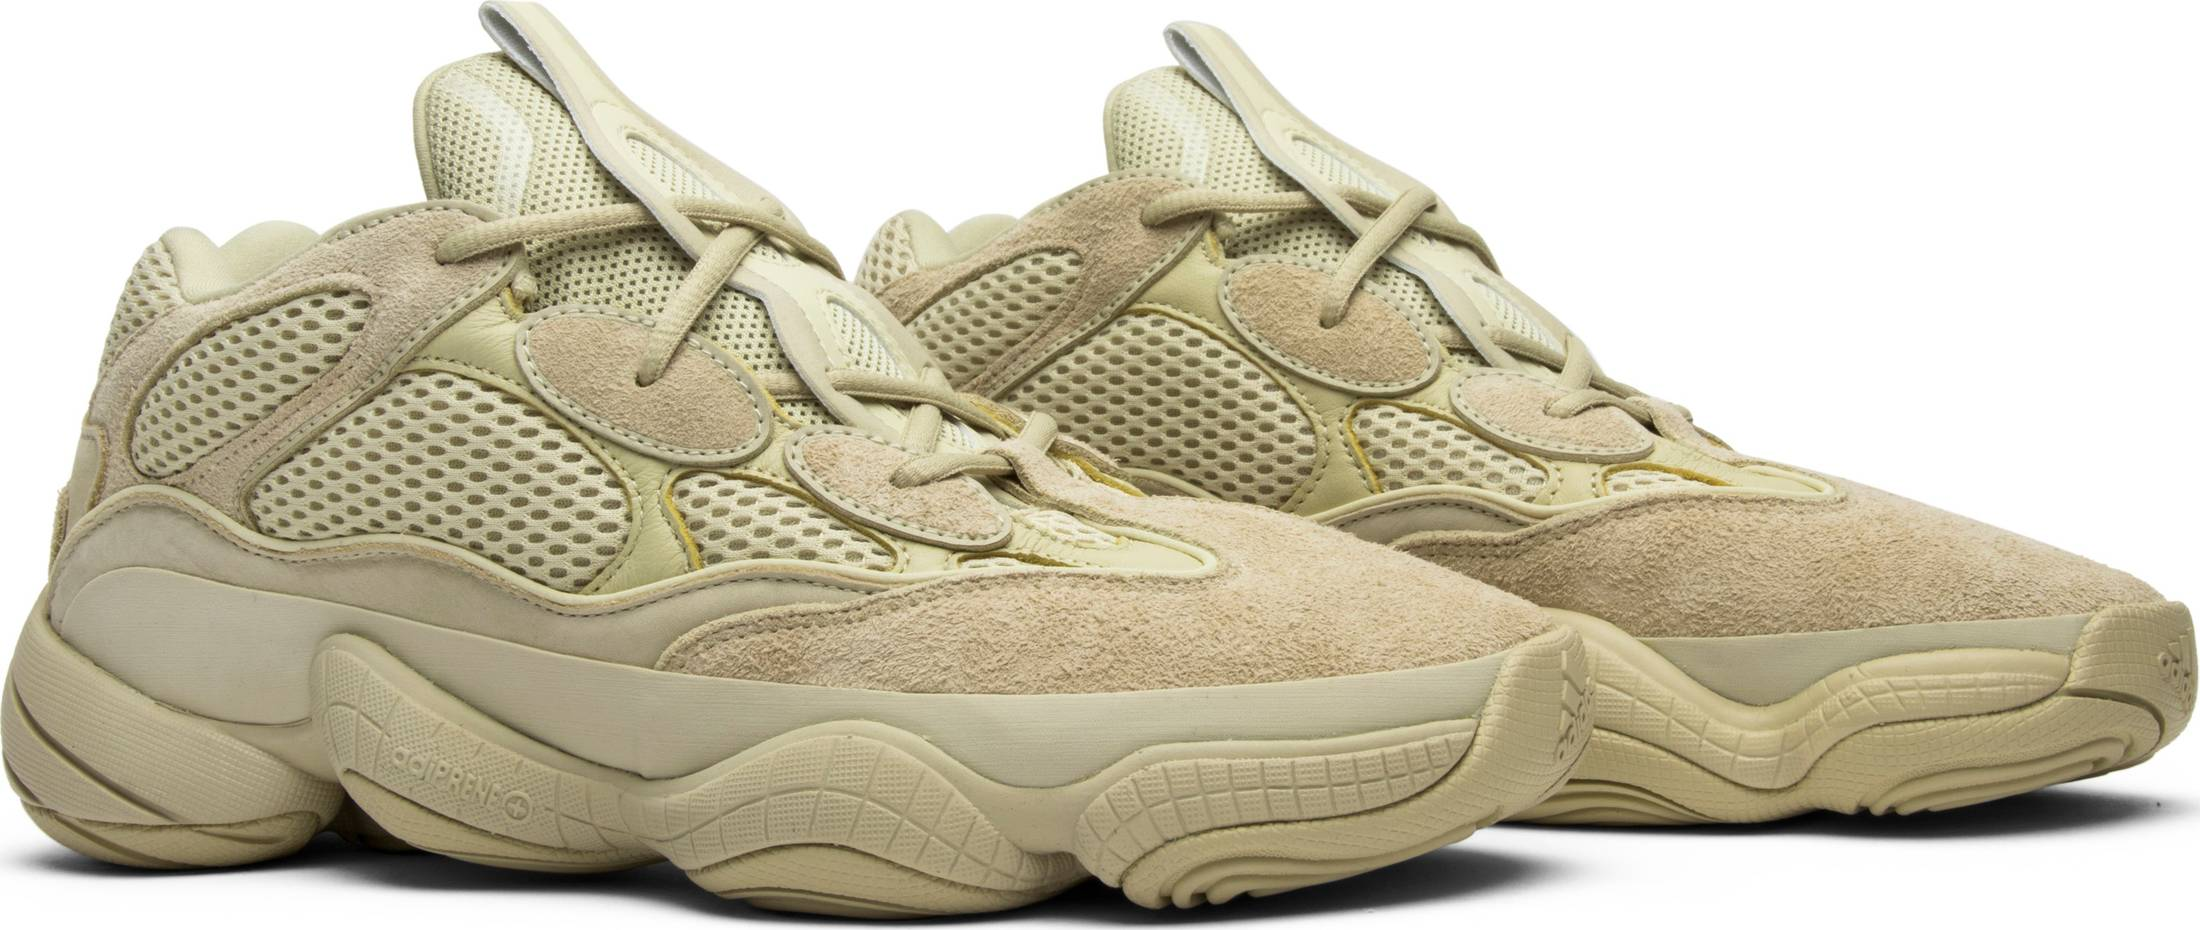 huge selection of f9a08 2b7dd Supermoon Yellow - adidas Yeezy 500 Desert Rat